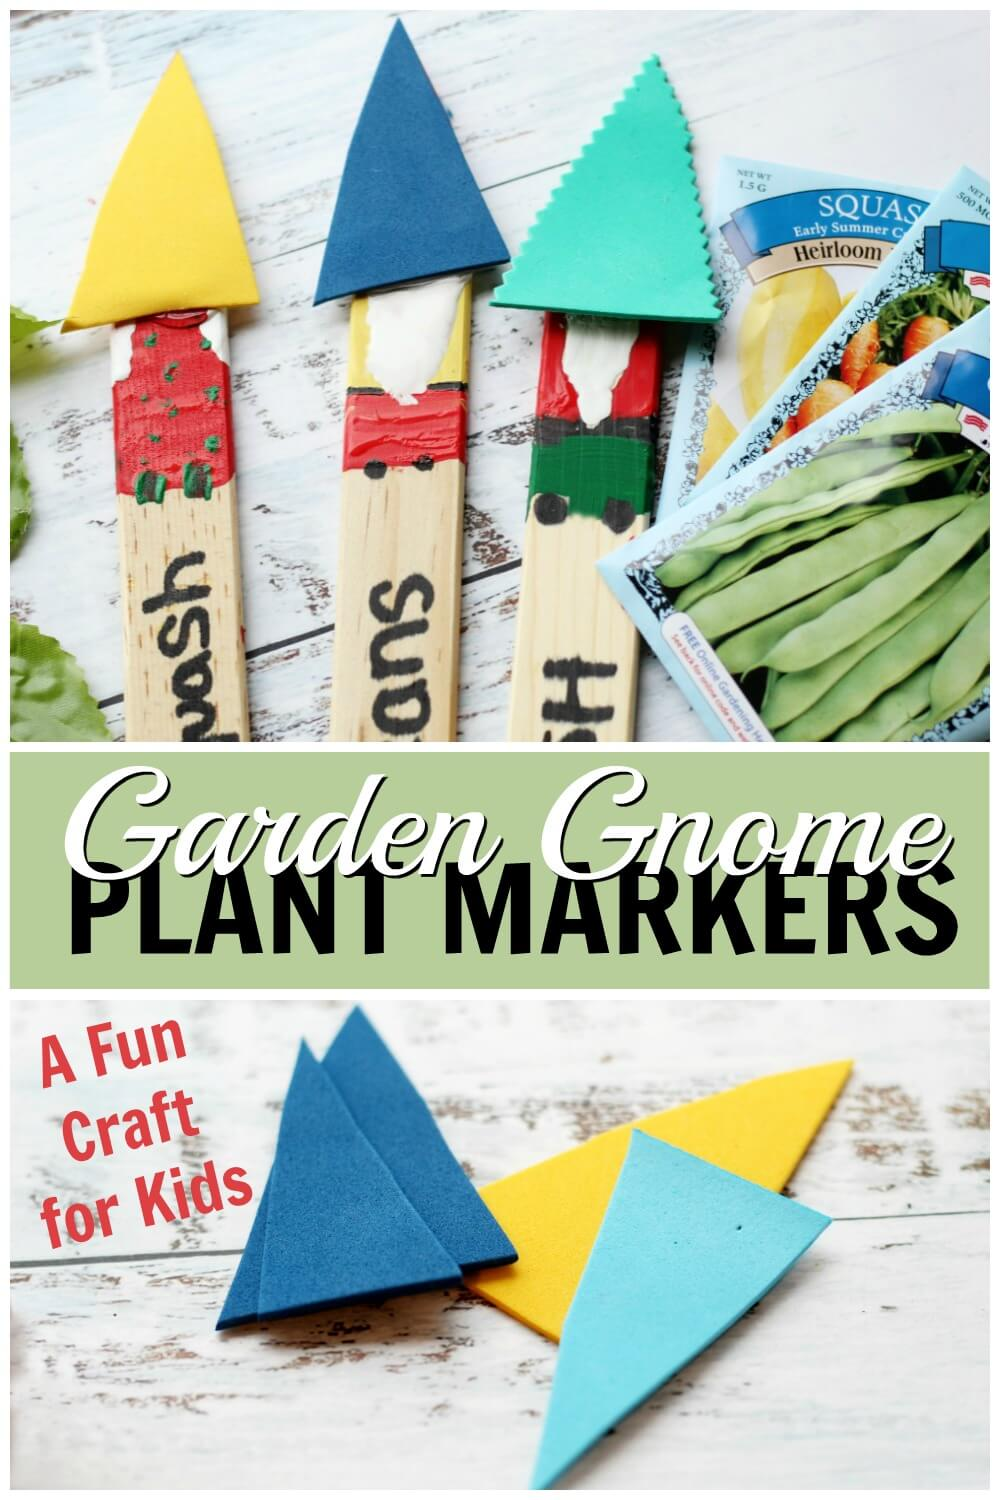 photo collage of gnome craft for kids with completed gnome markers on tip and steps on the bottom with text Garden Gnome Plant Markers